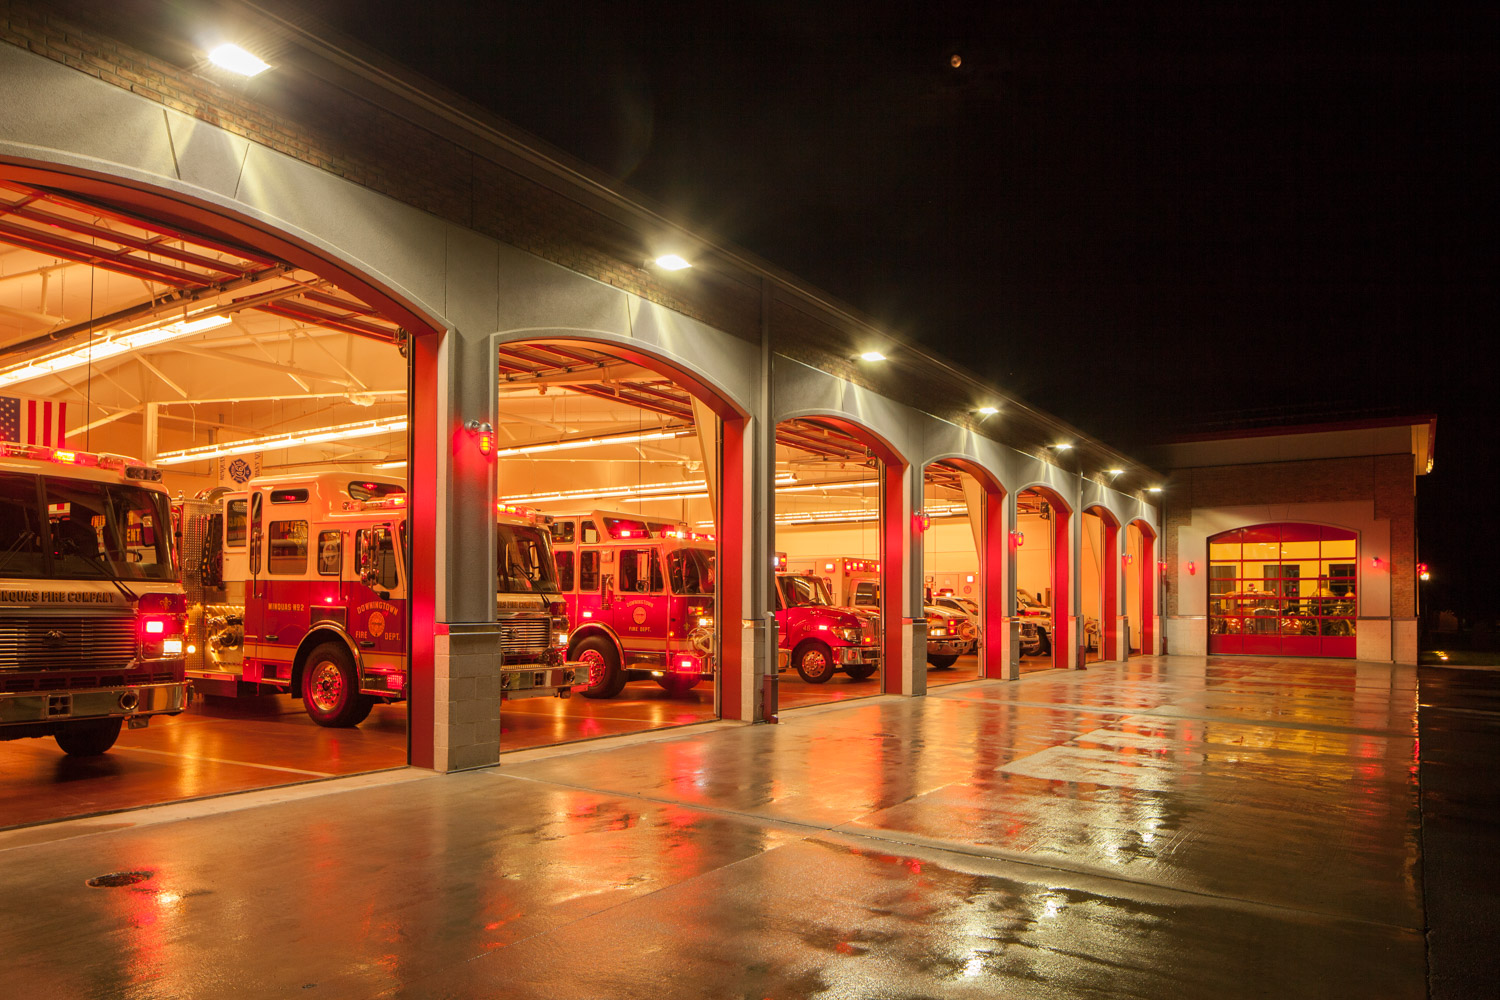 one of many files used to create the final image, this one captures the exterior lights over the garage bays. As you can see the colors very different between the inside and out. In person it doesn't look this strange, so it is my job to make the colors match and look natural.